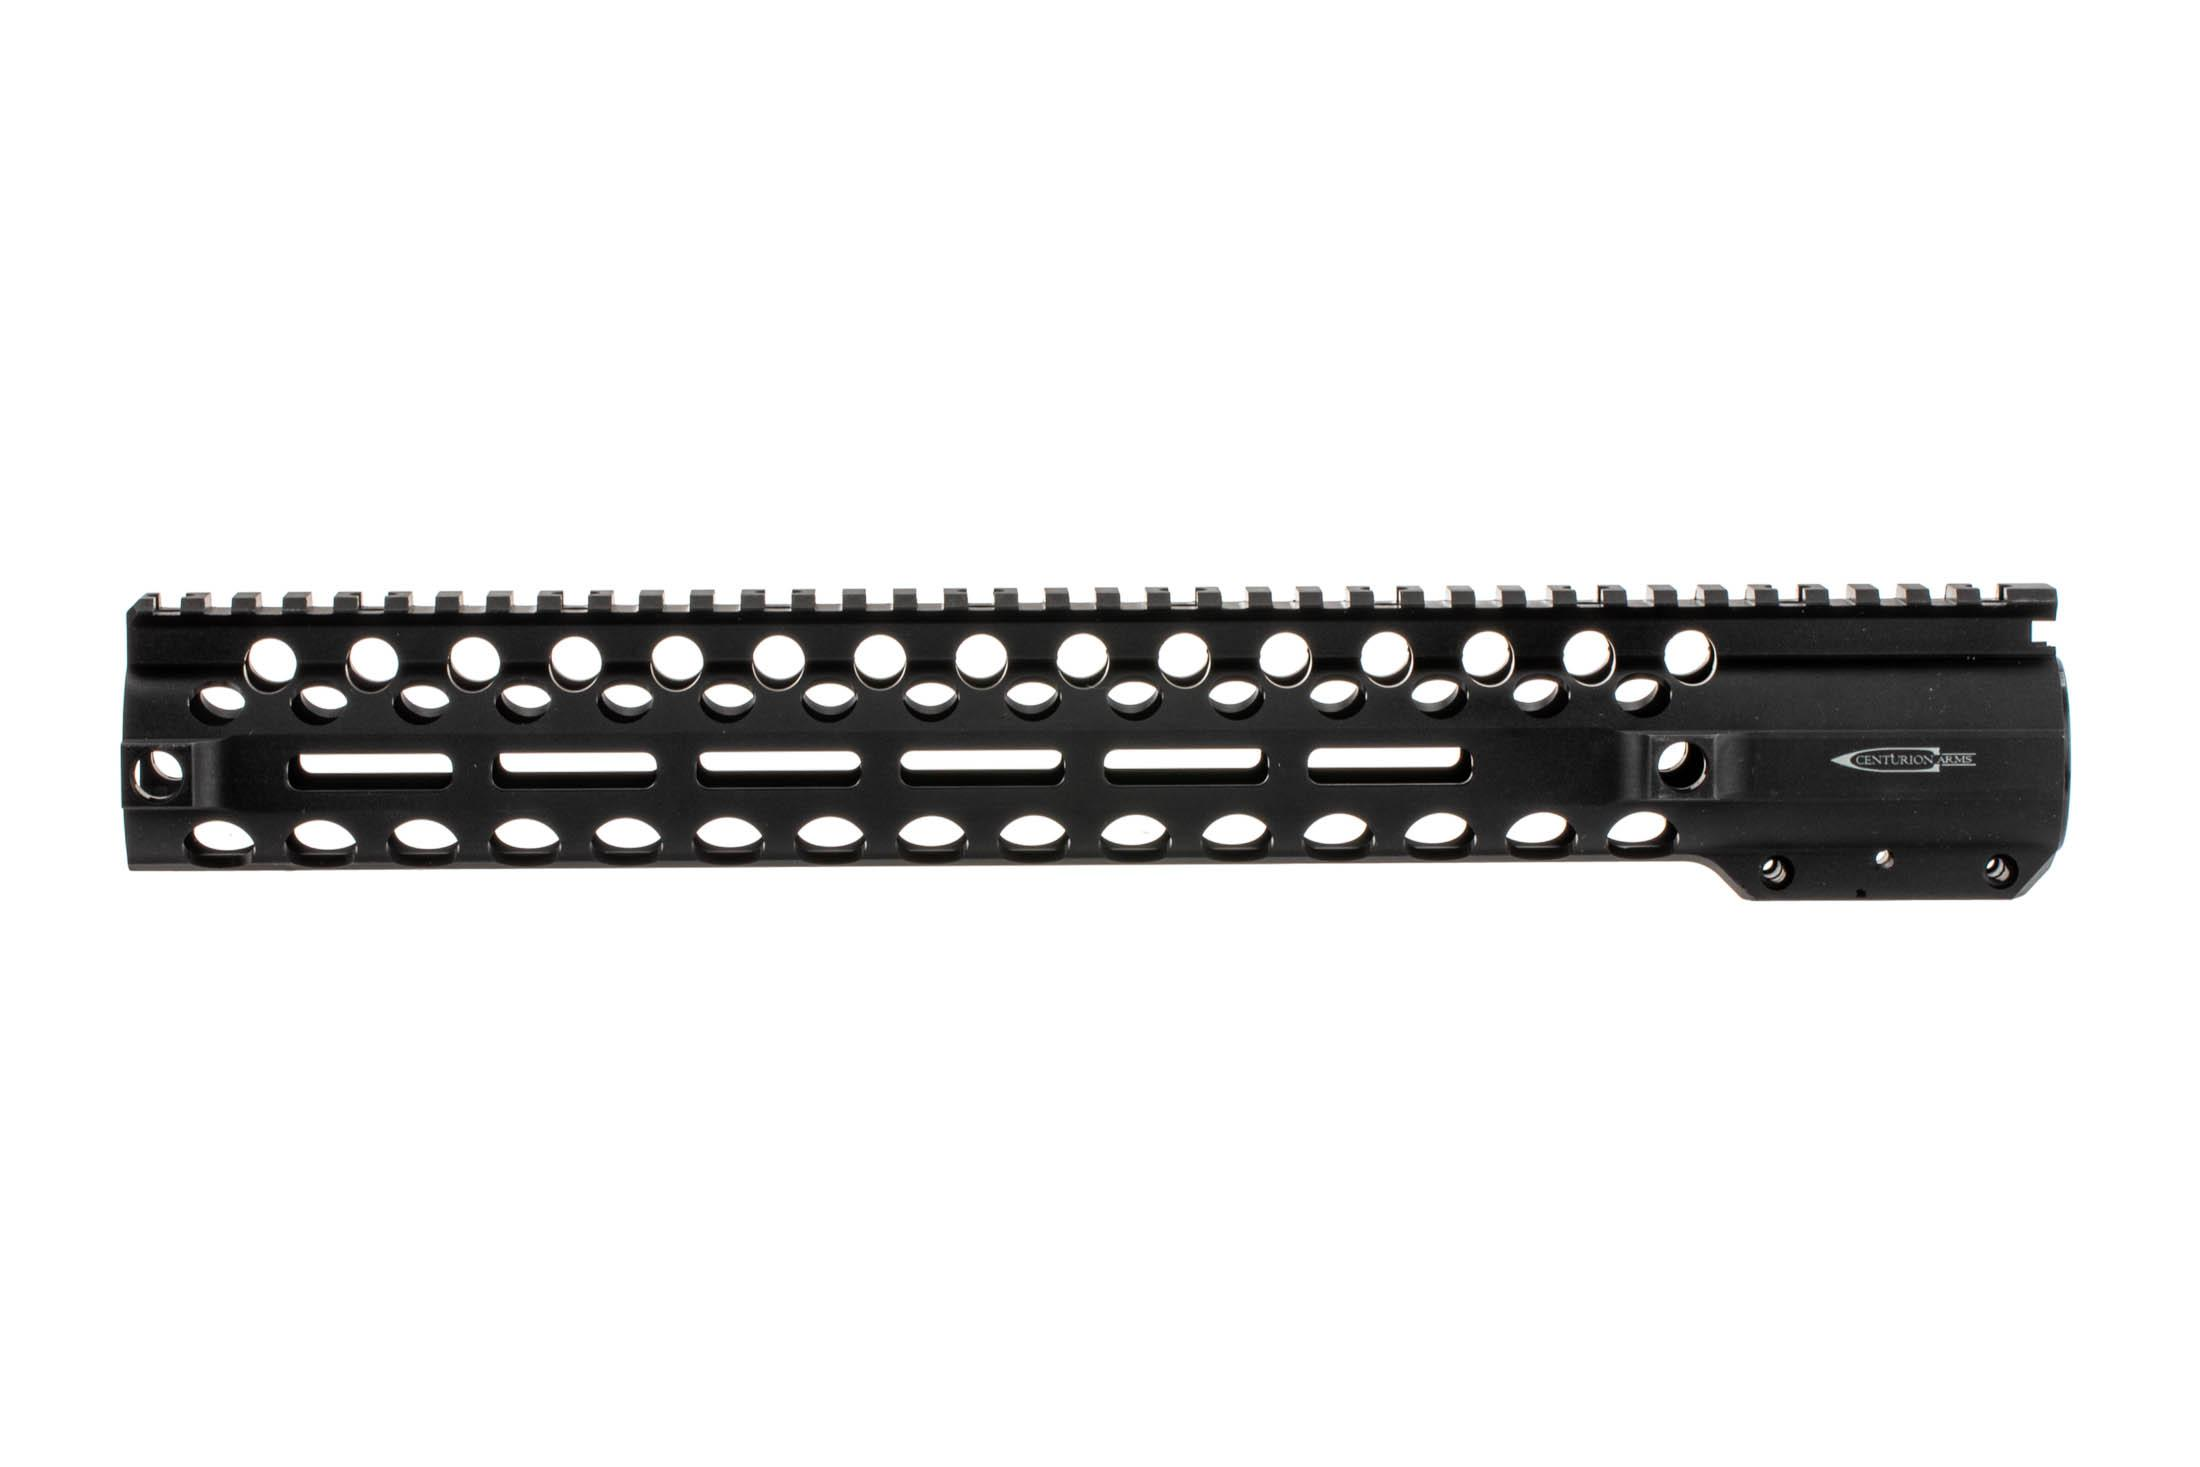 The Centurion Arms CMR 308 M-LOK handguard is designed for high pattern receivers